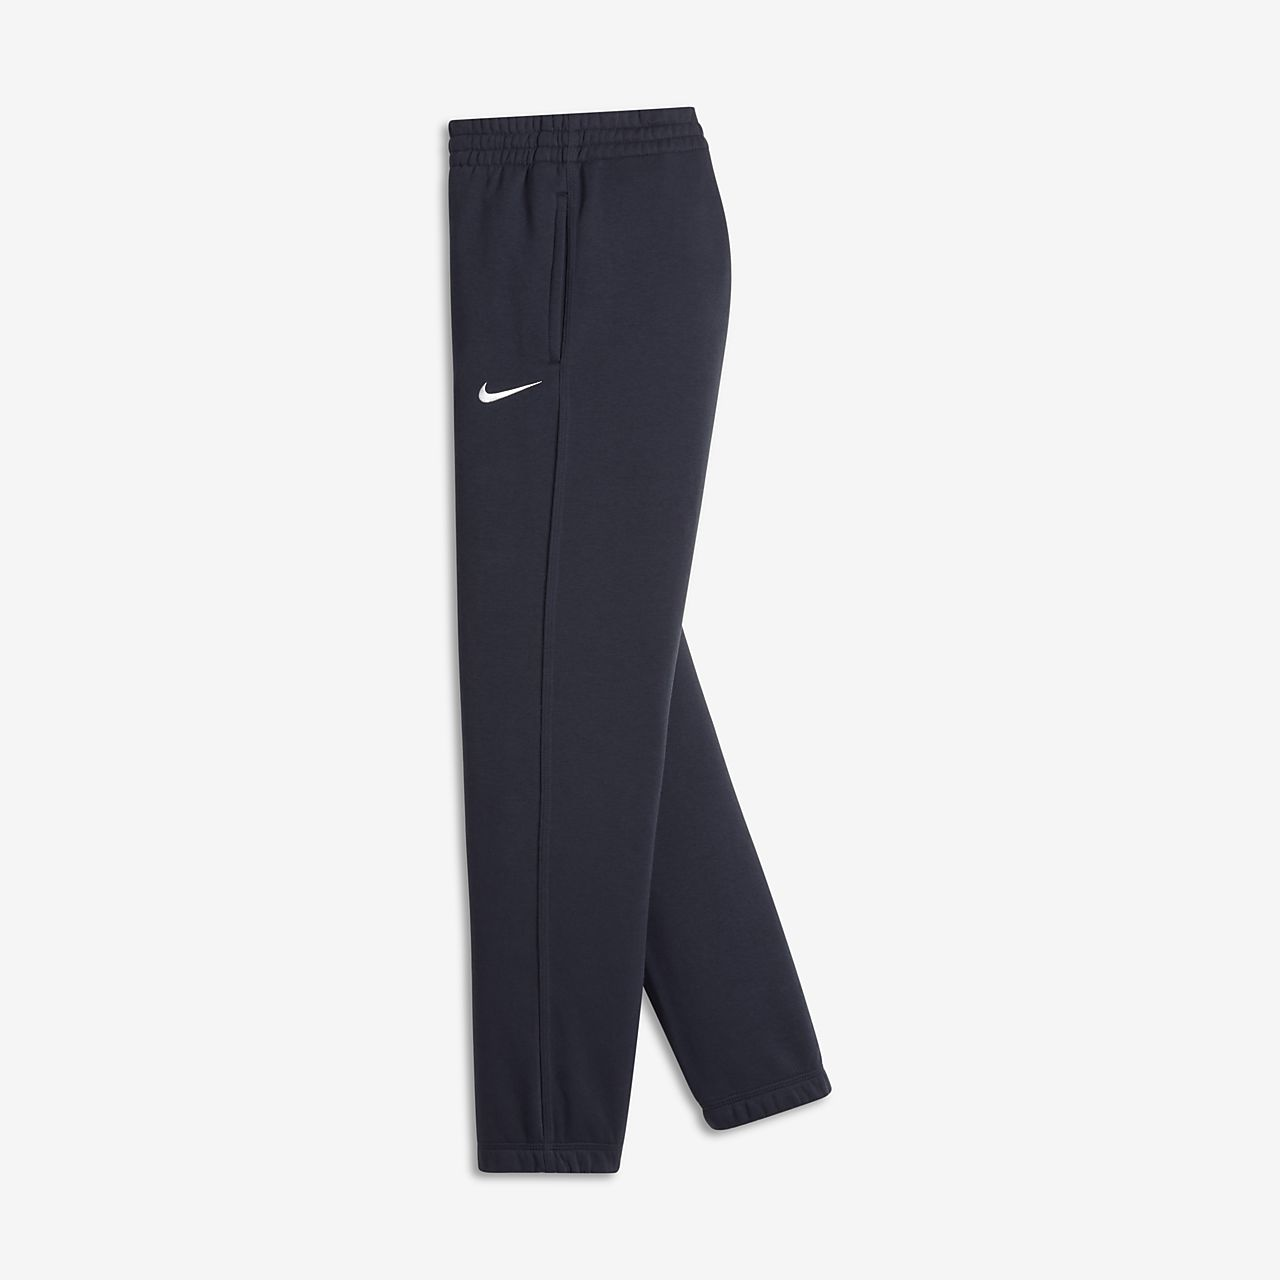 nike fleece dress suit